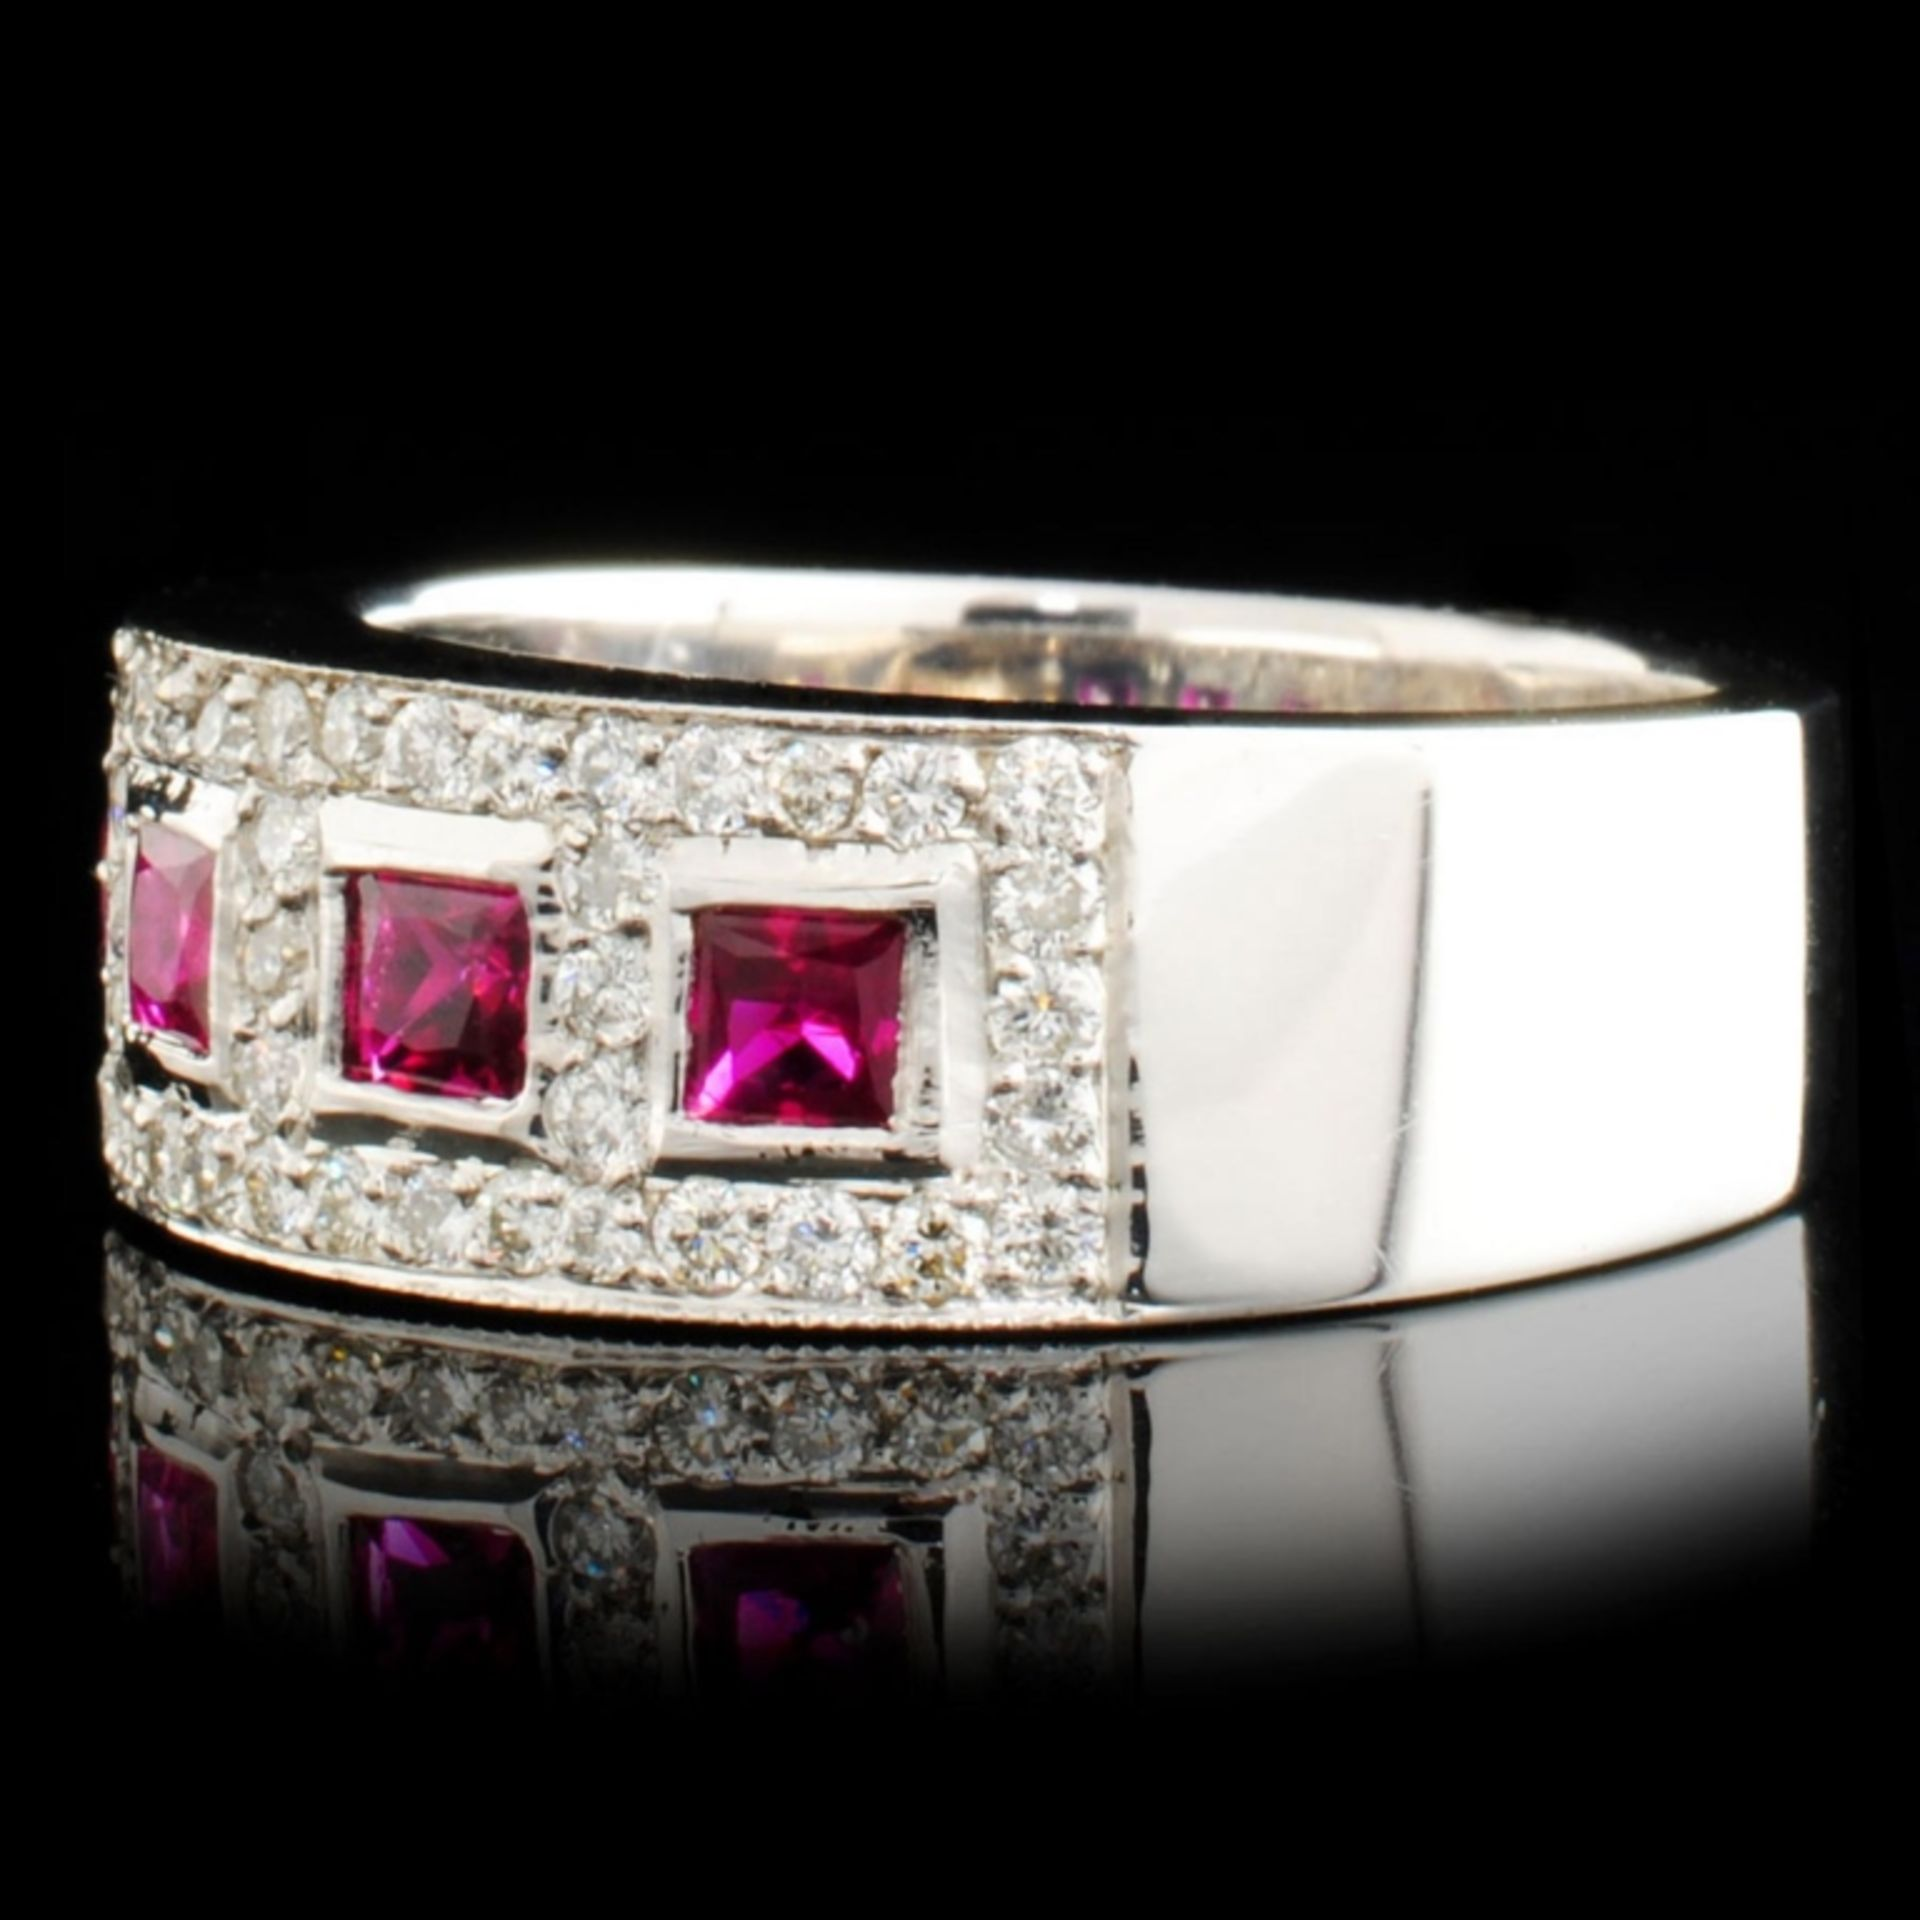 14K Gold 0.59ct Ruby & 0.62ctw Diamond Ring - Image 2 of 5